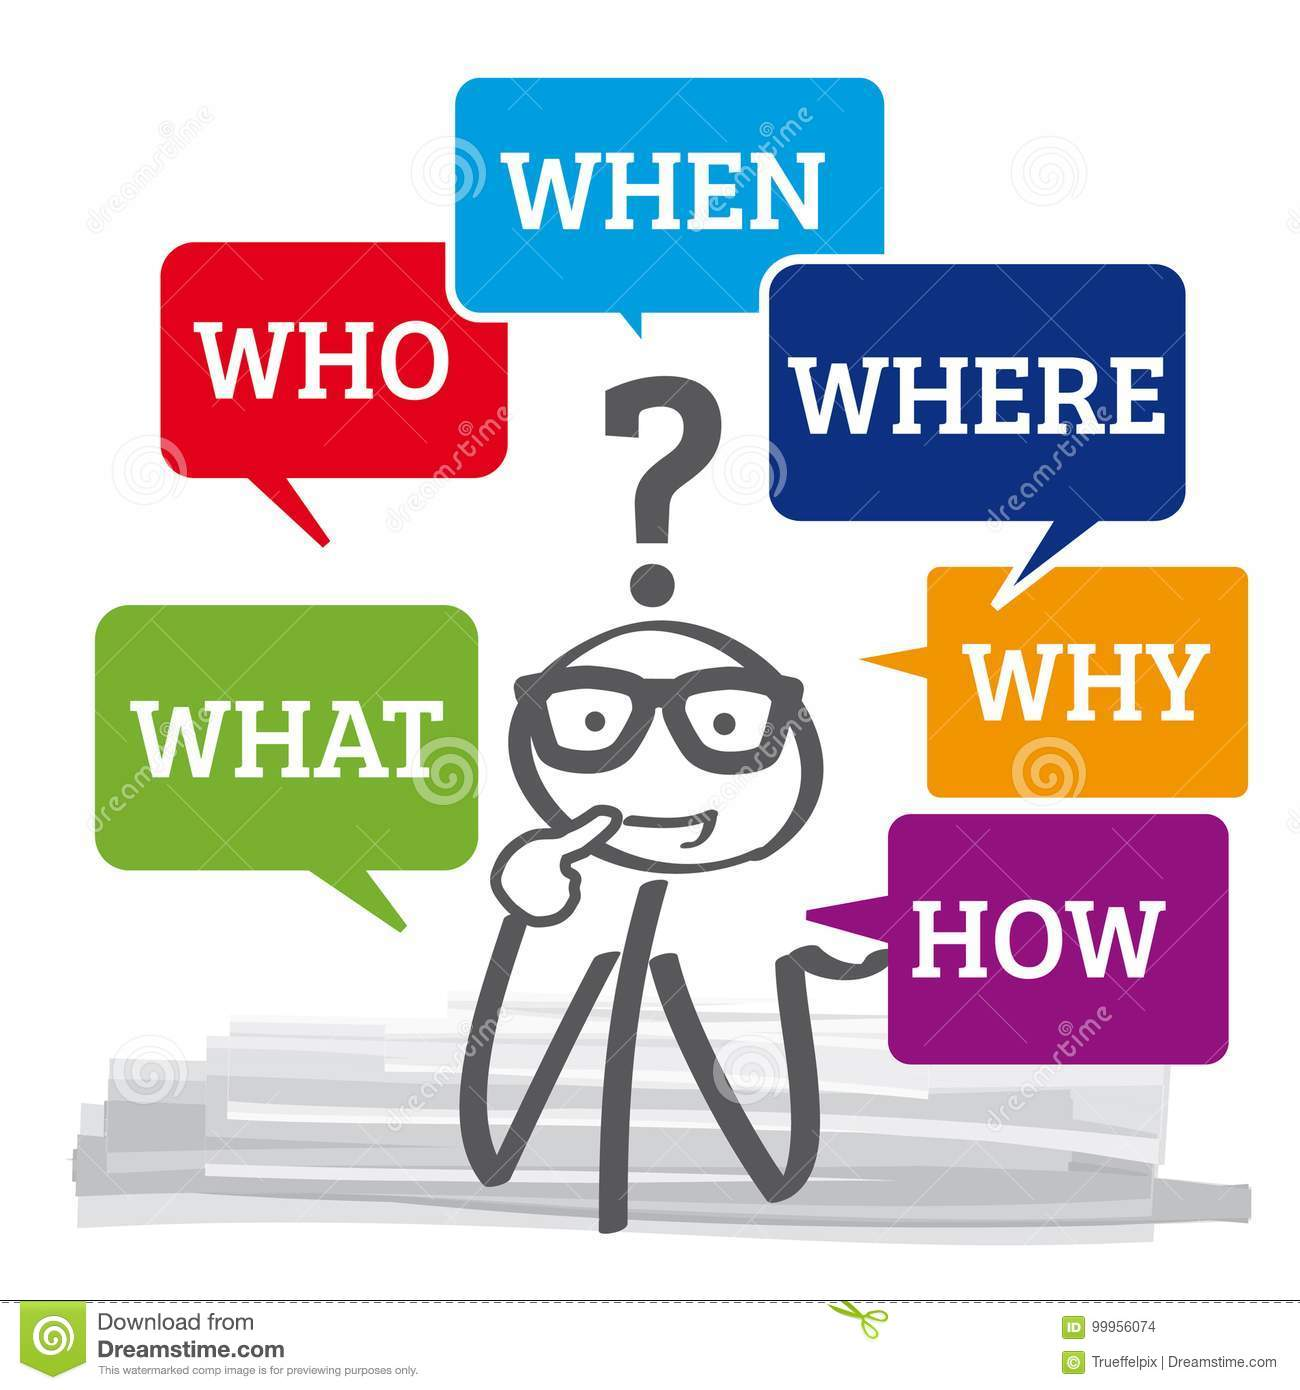 Questions - who, why, how, what, where, when